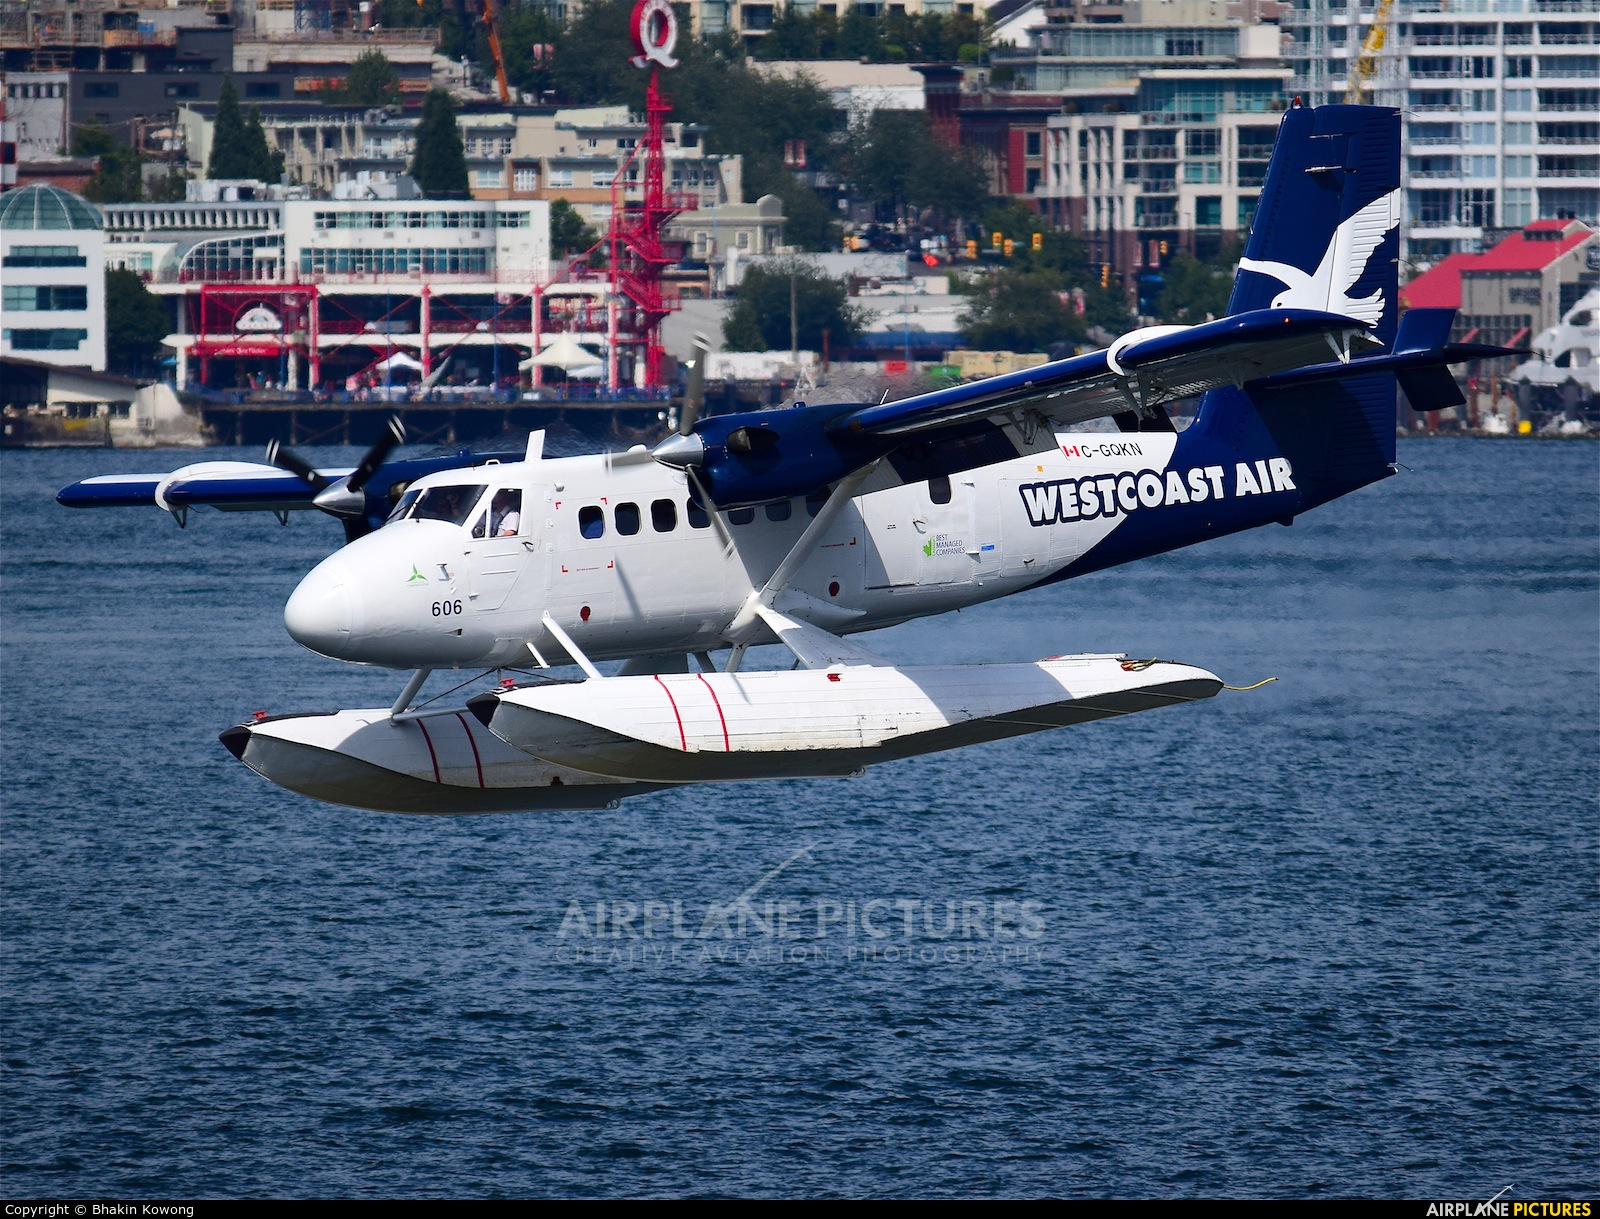 West Coast Air C-GQKN aircraft at Vancouver Coal Harbour, BC